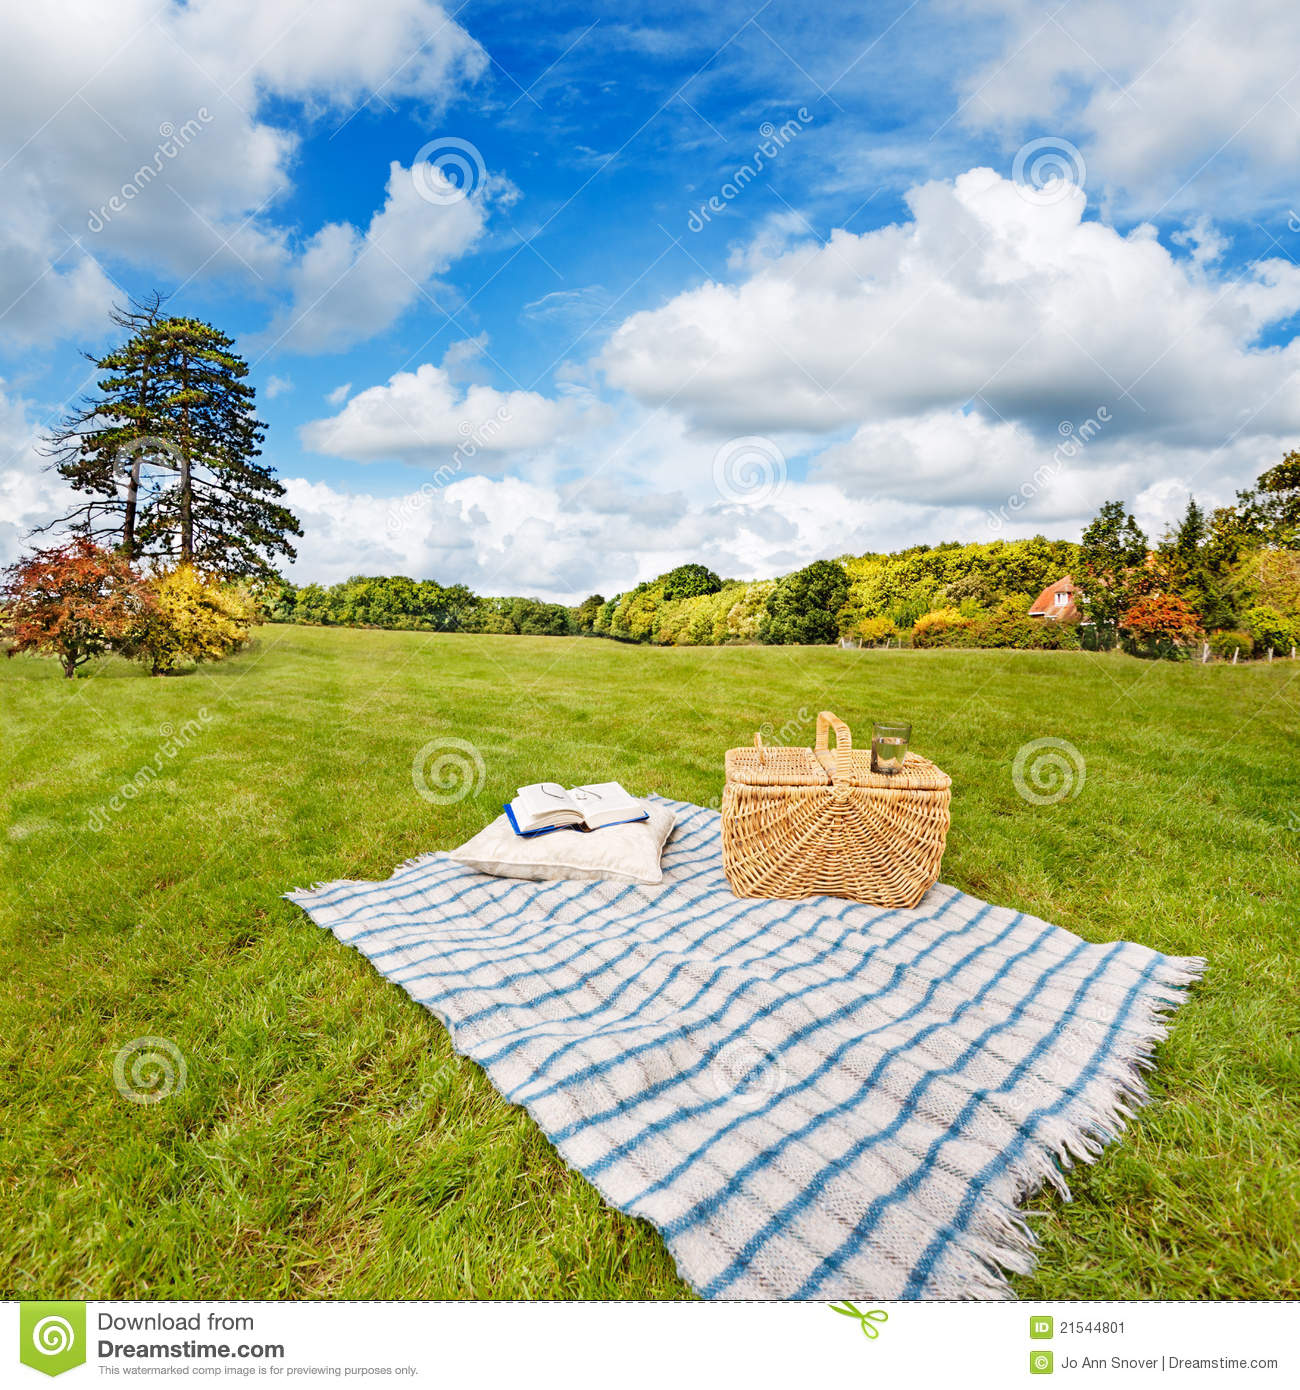 Picnic Blanket Amp Basket In Sunny Field Stock Image Image